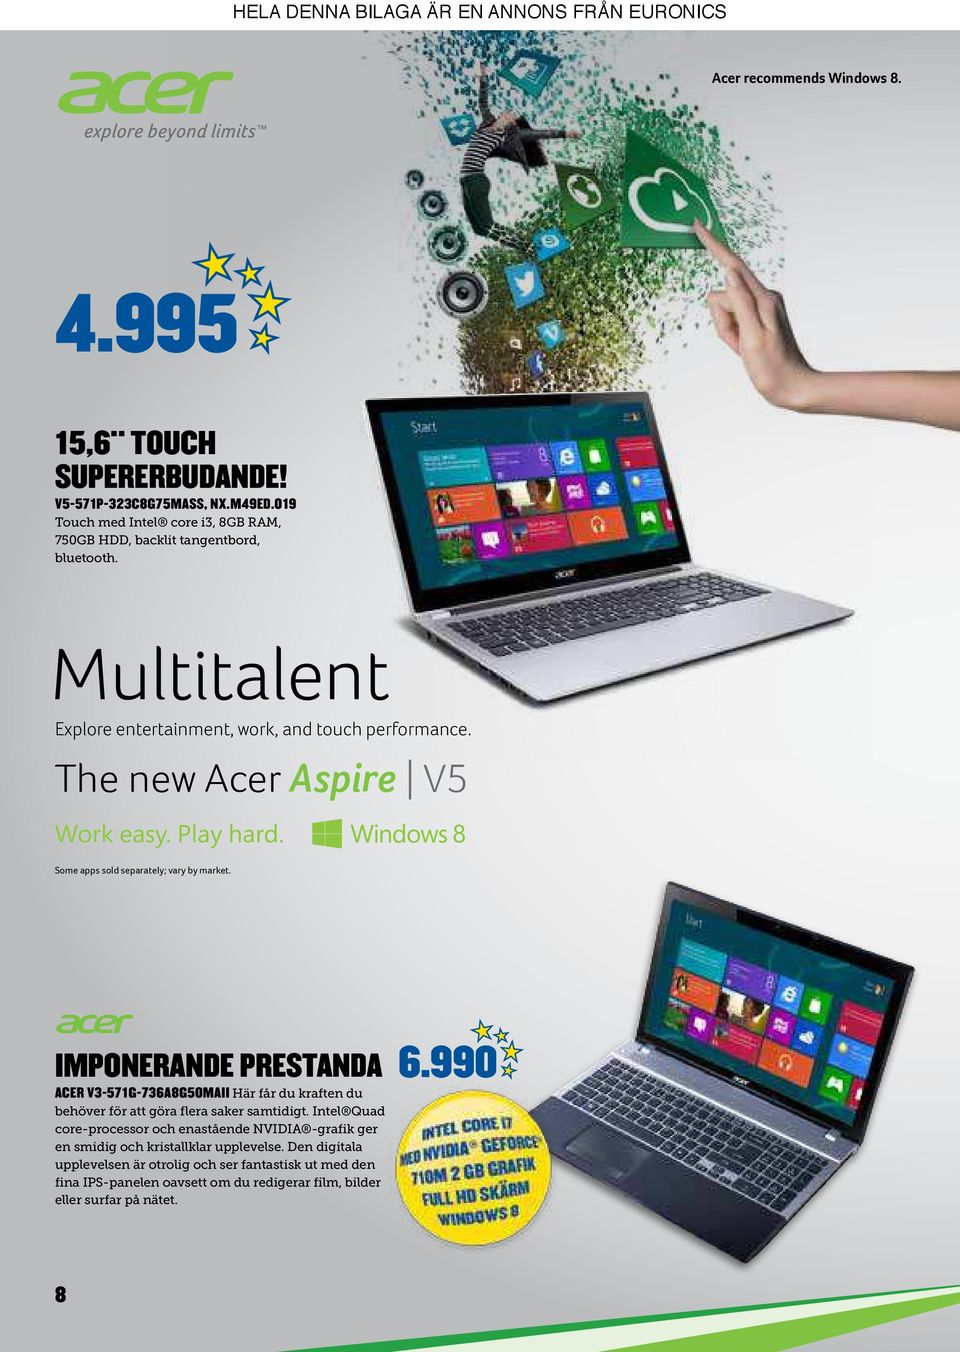 The new Acer Aspire V5 Some apps sold separately; vary by market.